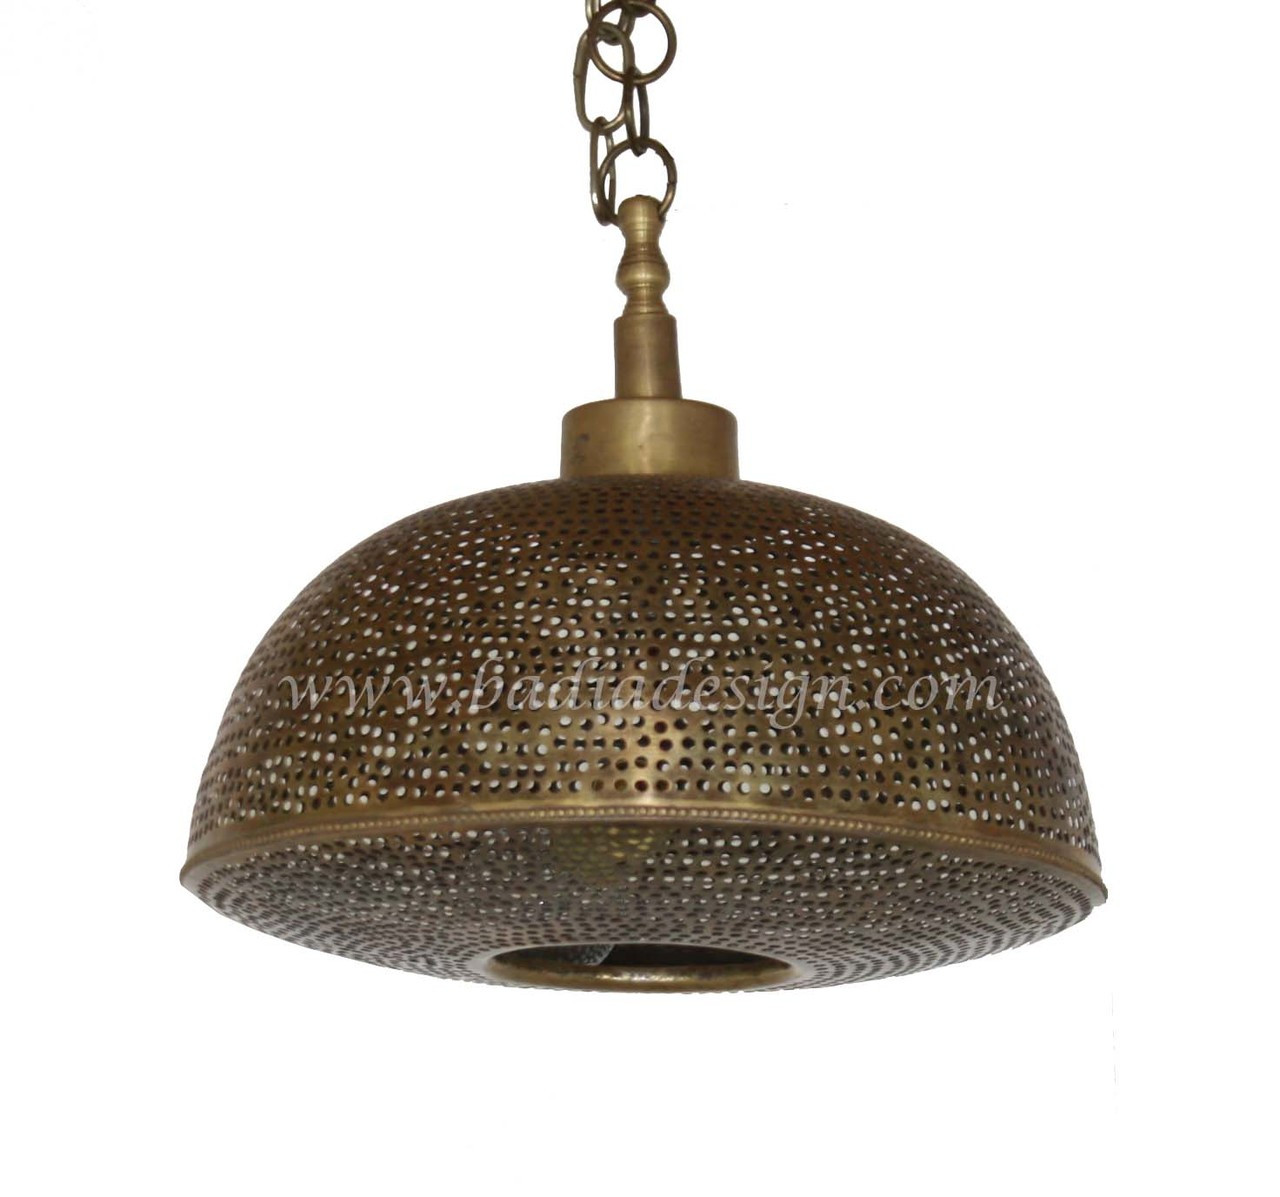 Small brass ceiling light fixture lig278 image 1 loading zoom